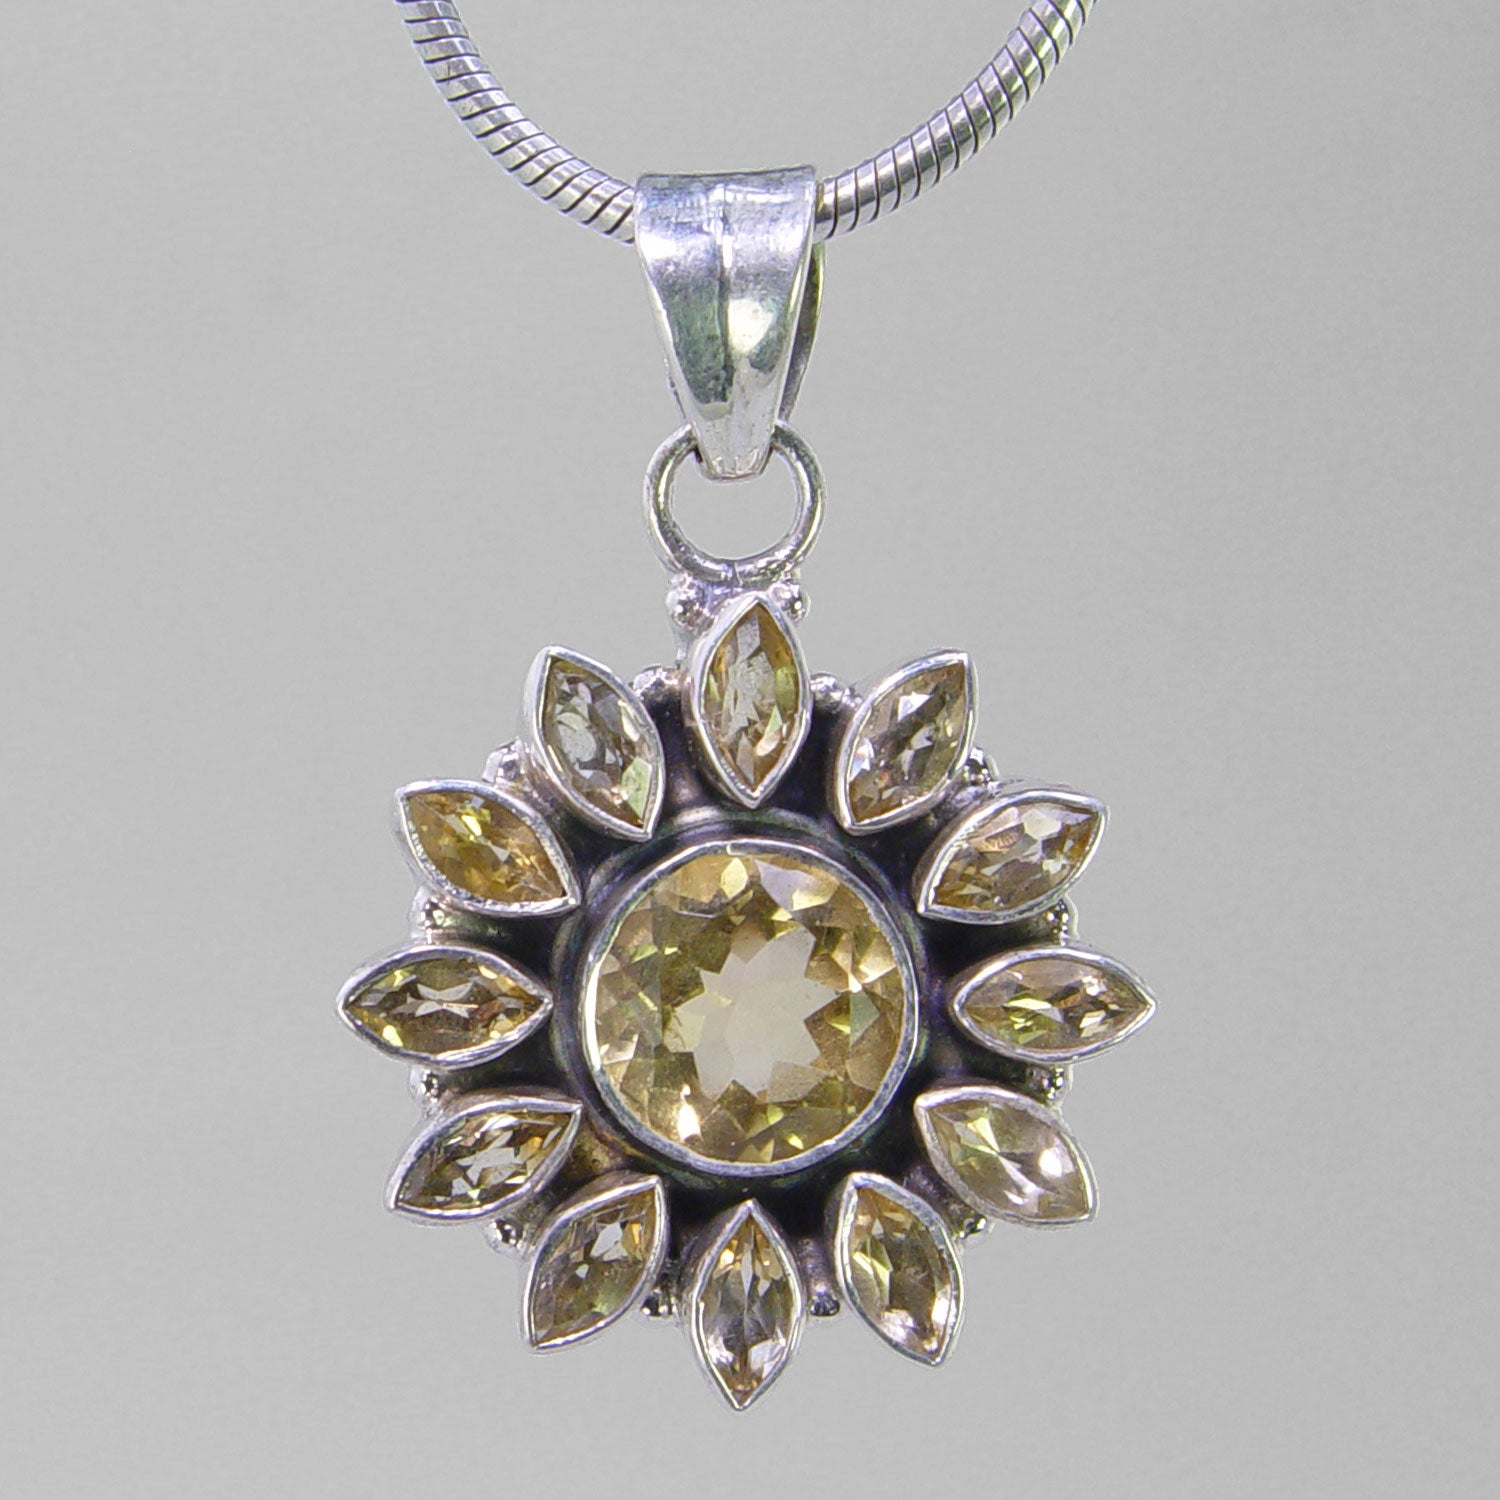 Citrine 6 ct Round Faceted Bezel Set With 12 Small Citrine's Sterling Silver Pendant